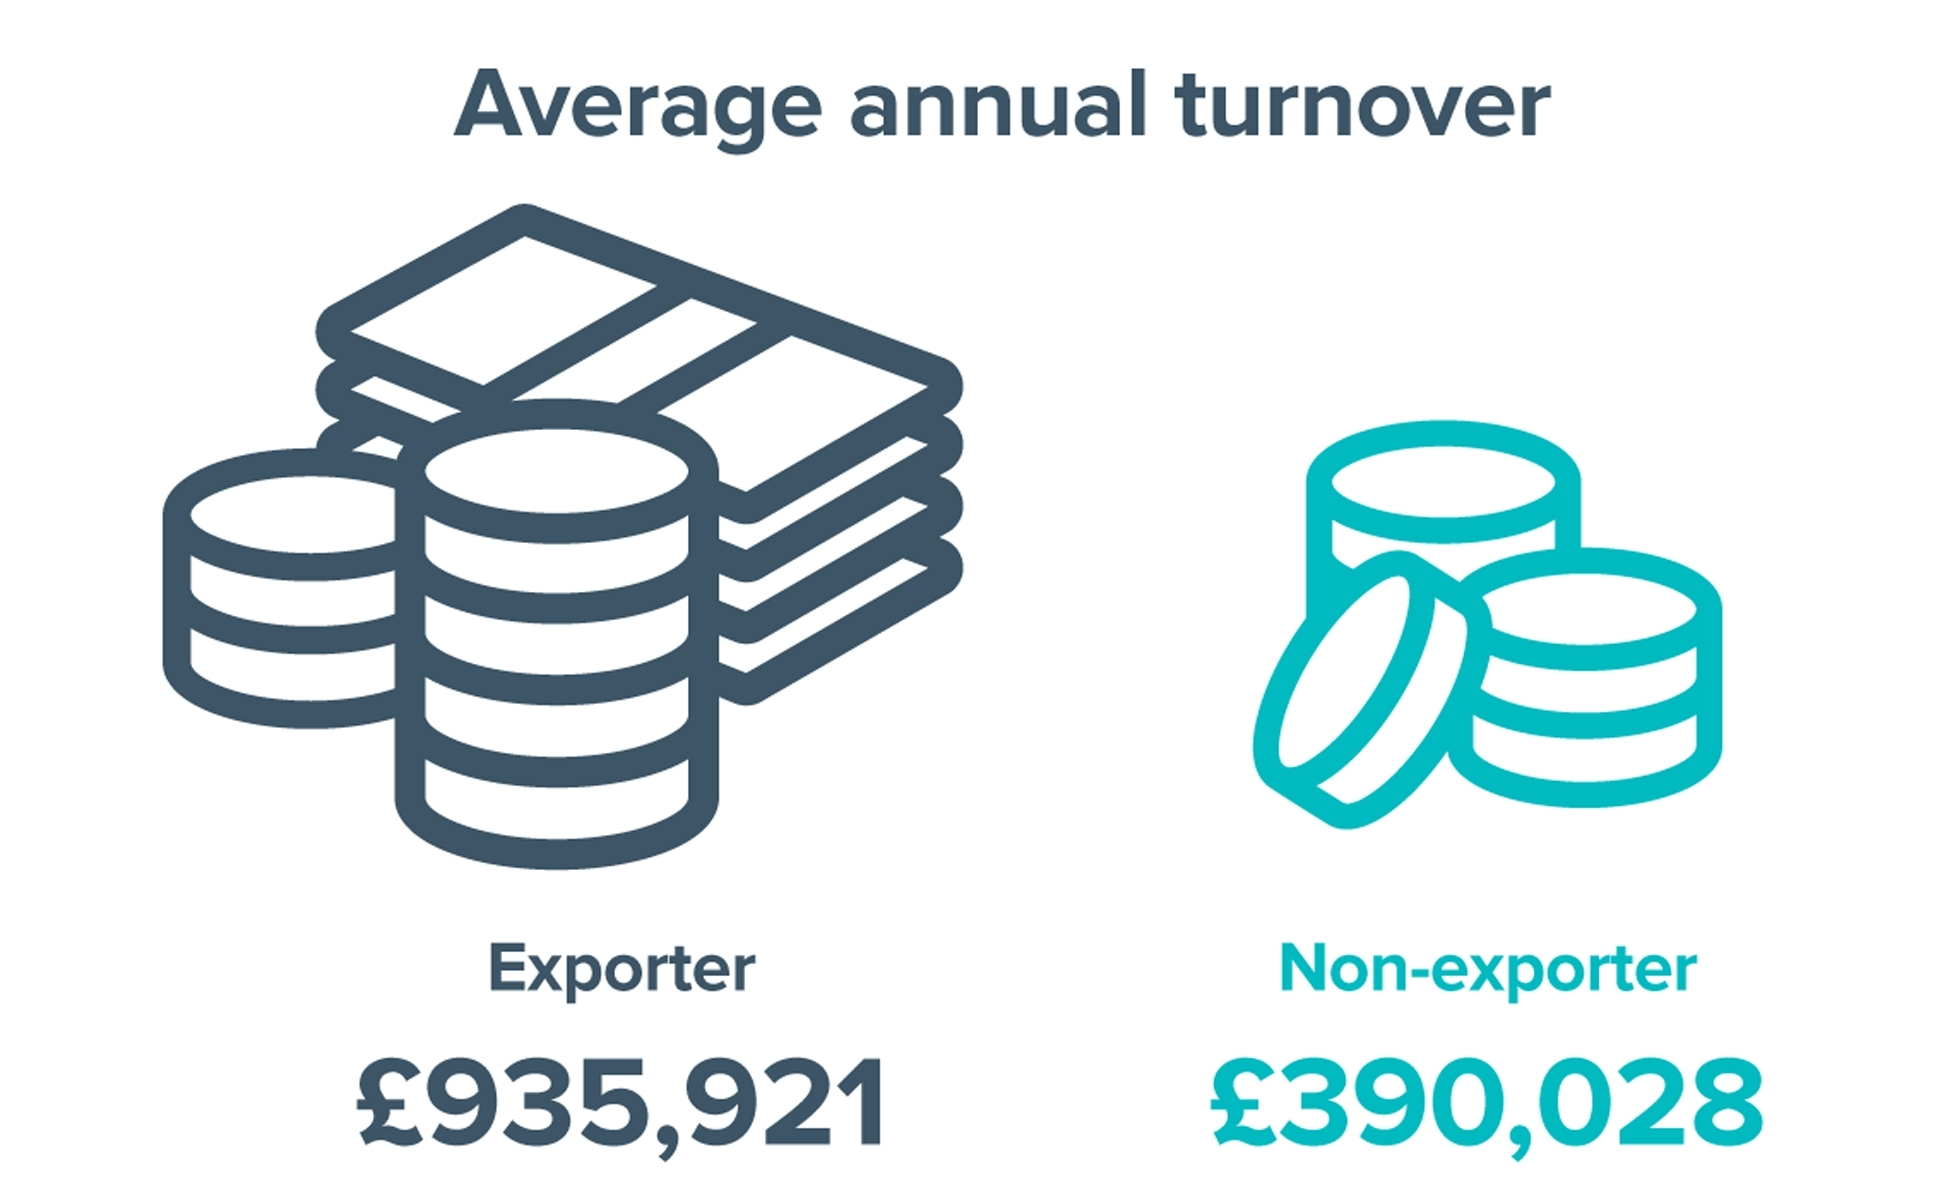 Potential turnover for small business exporters